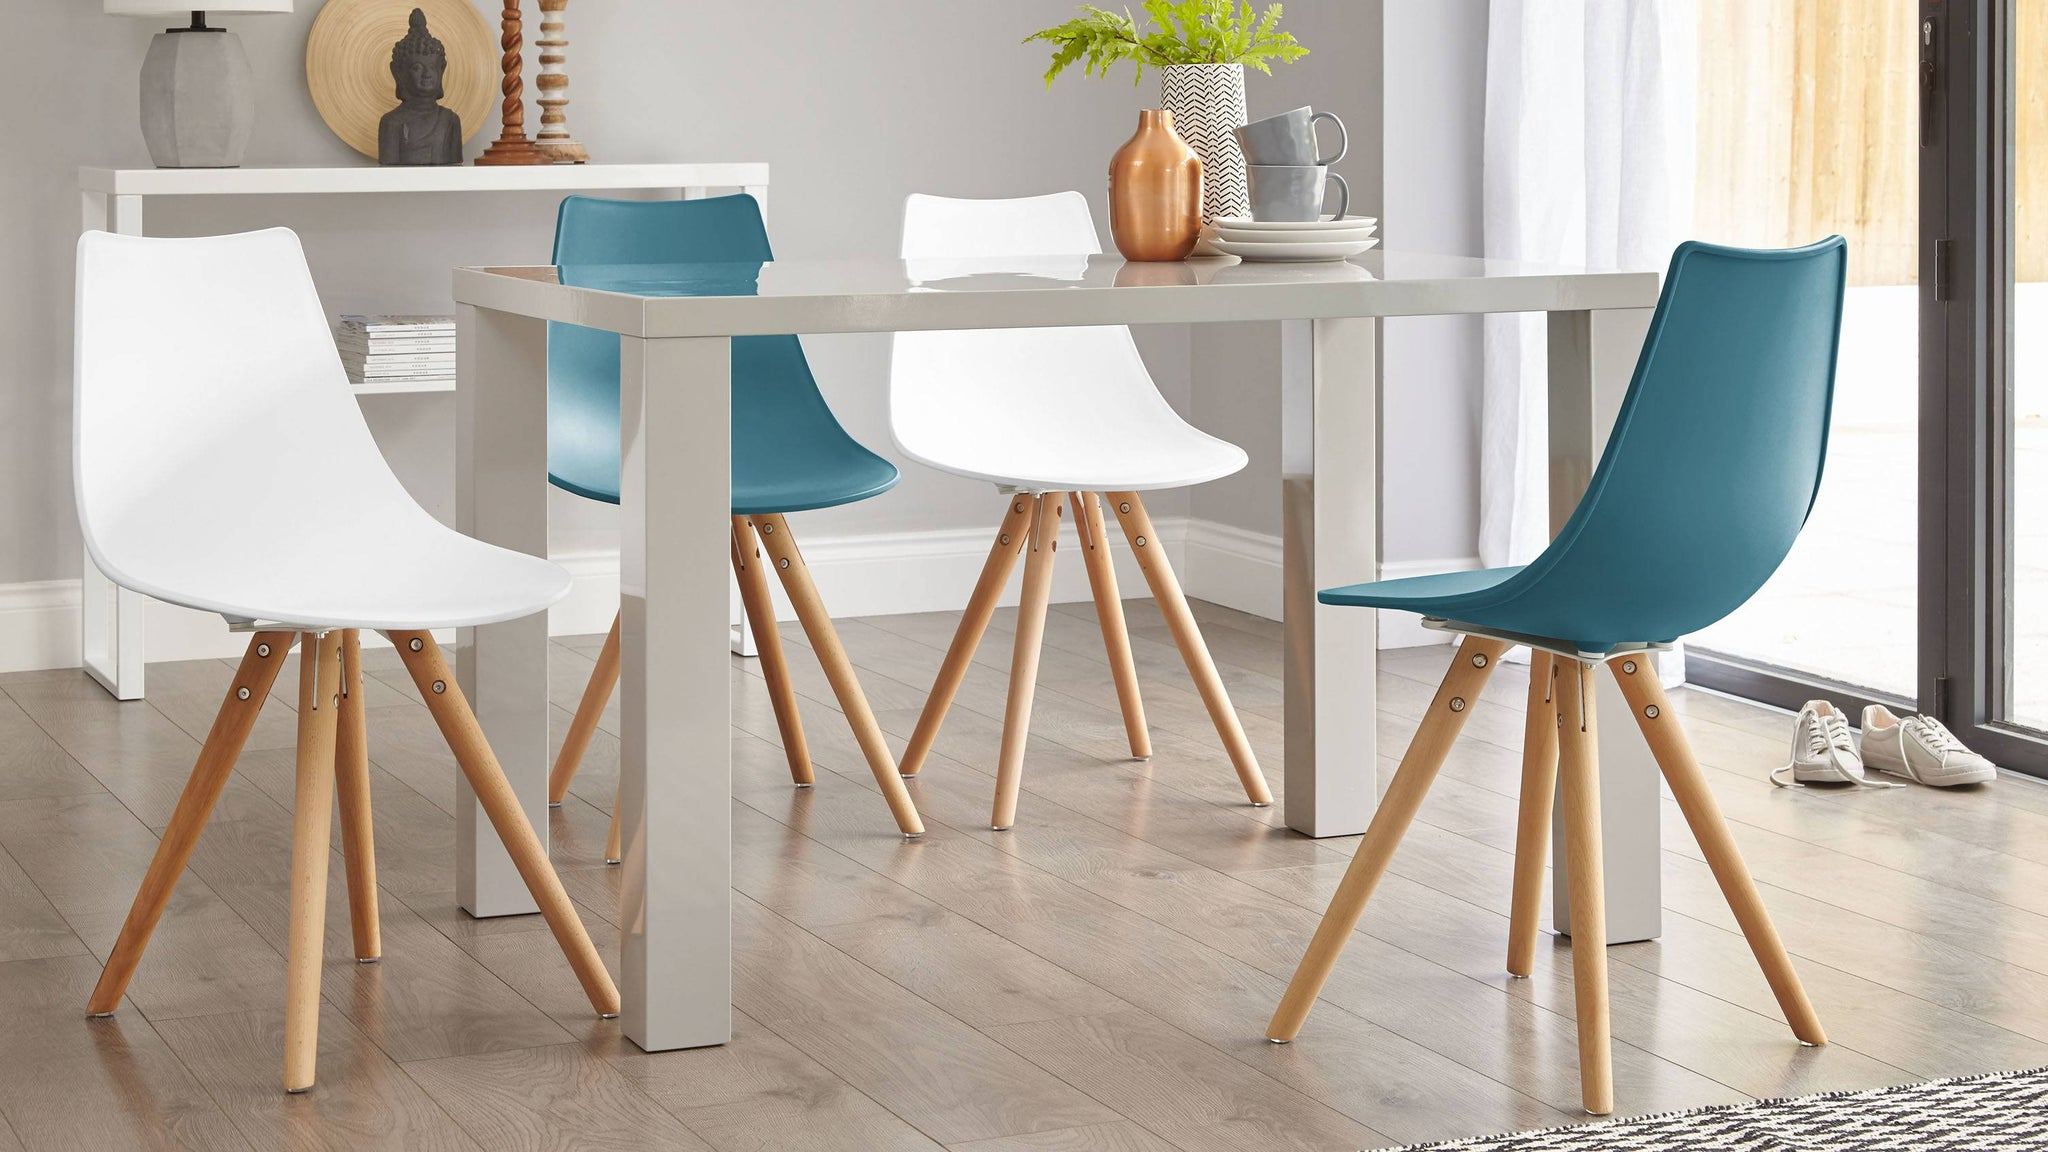 Grey gloss table with colourful chairs